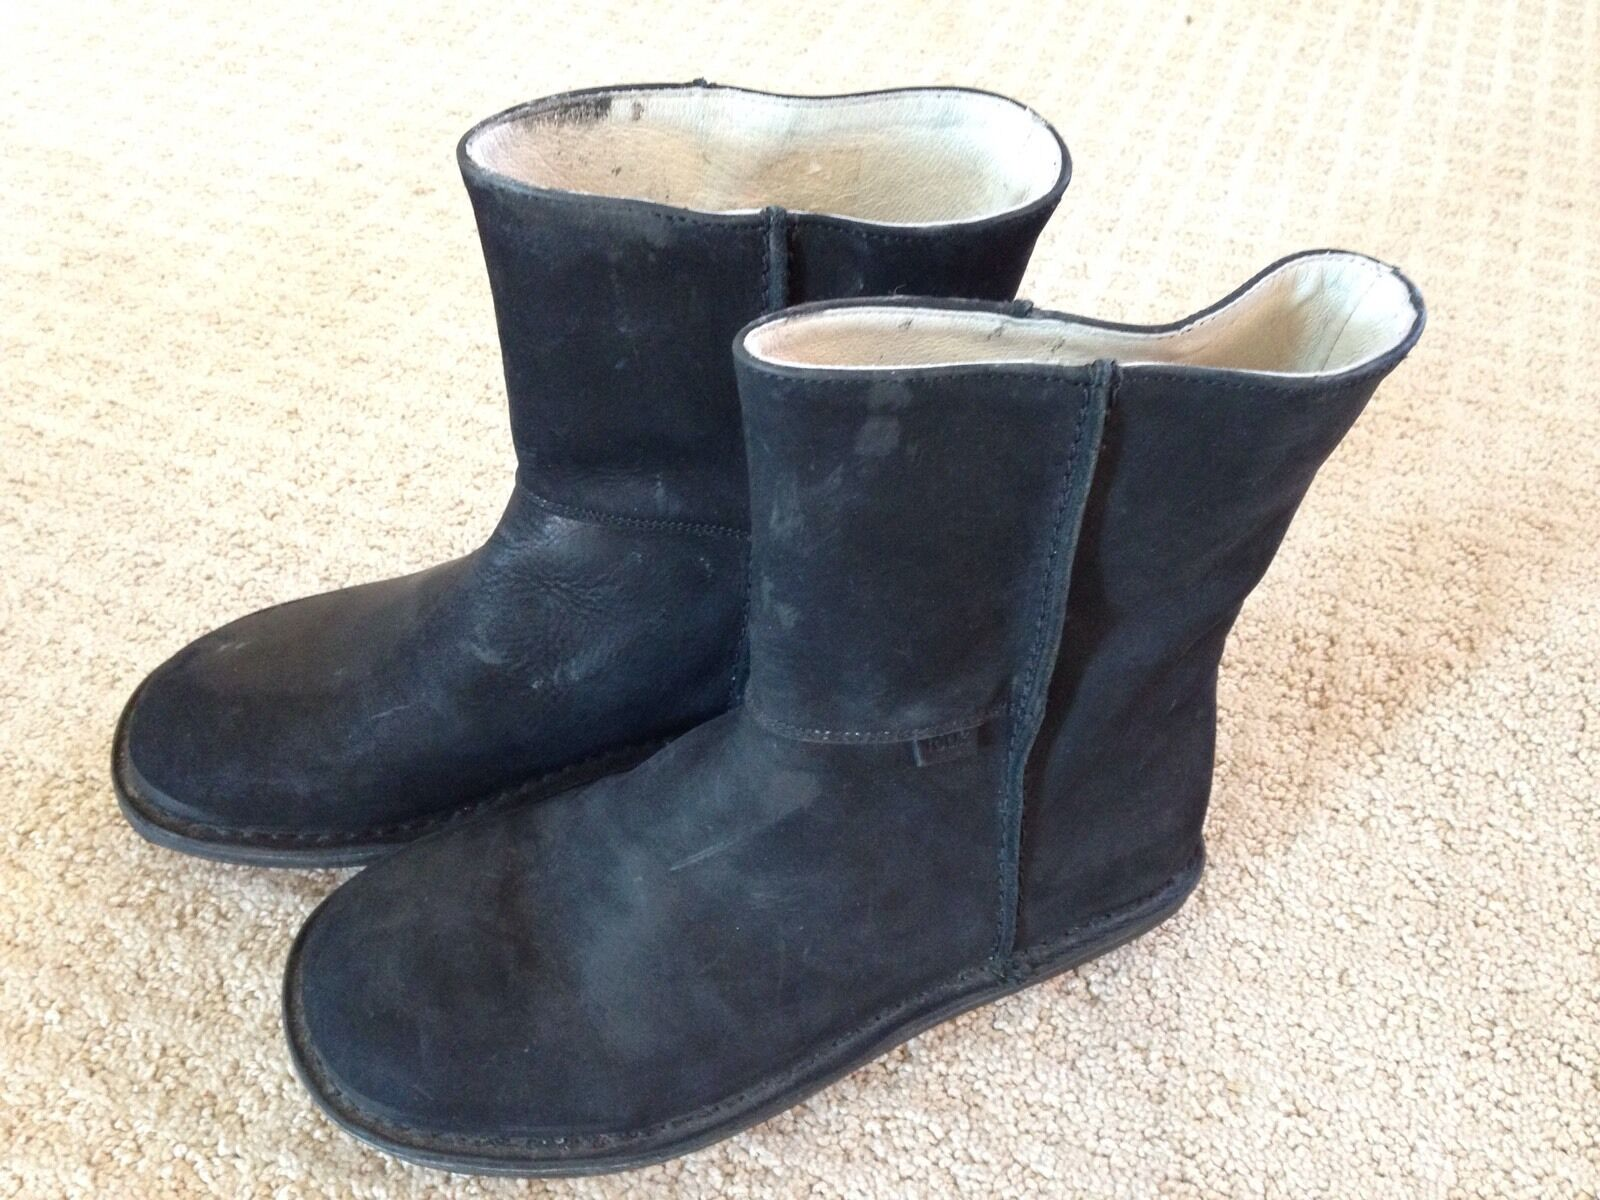 EUC Women's Black Leather Suede French Connection Ankle Boots-Size 6.5